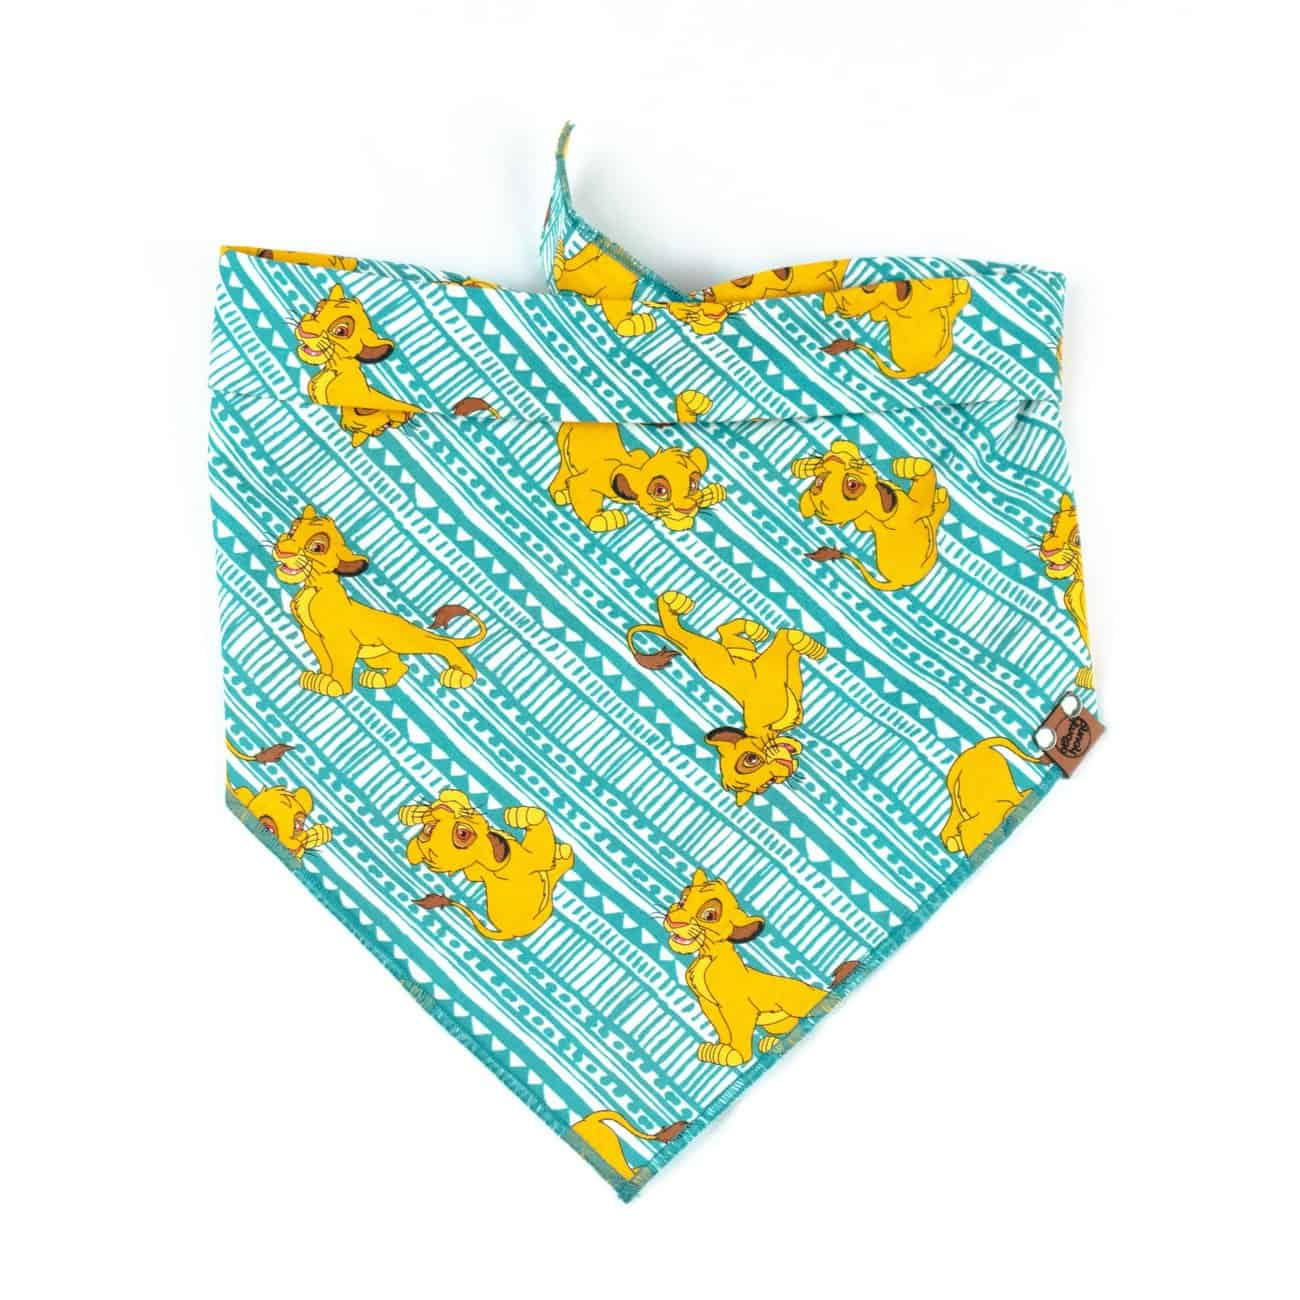 Turquoise and golden cartoon lion dog bandana